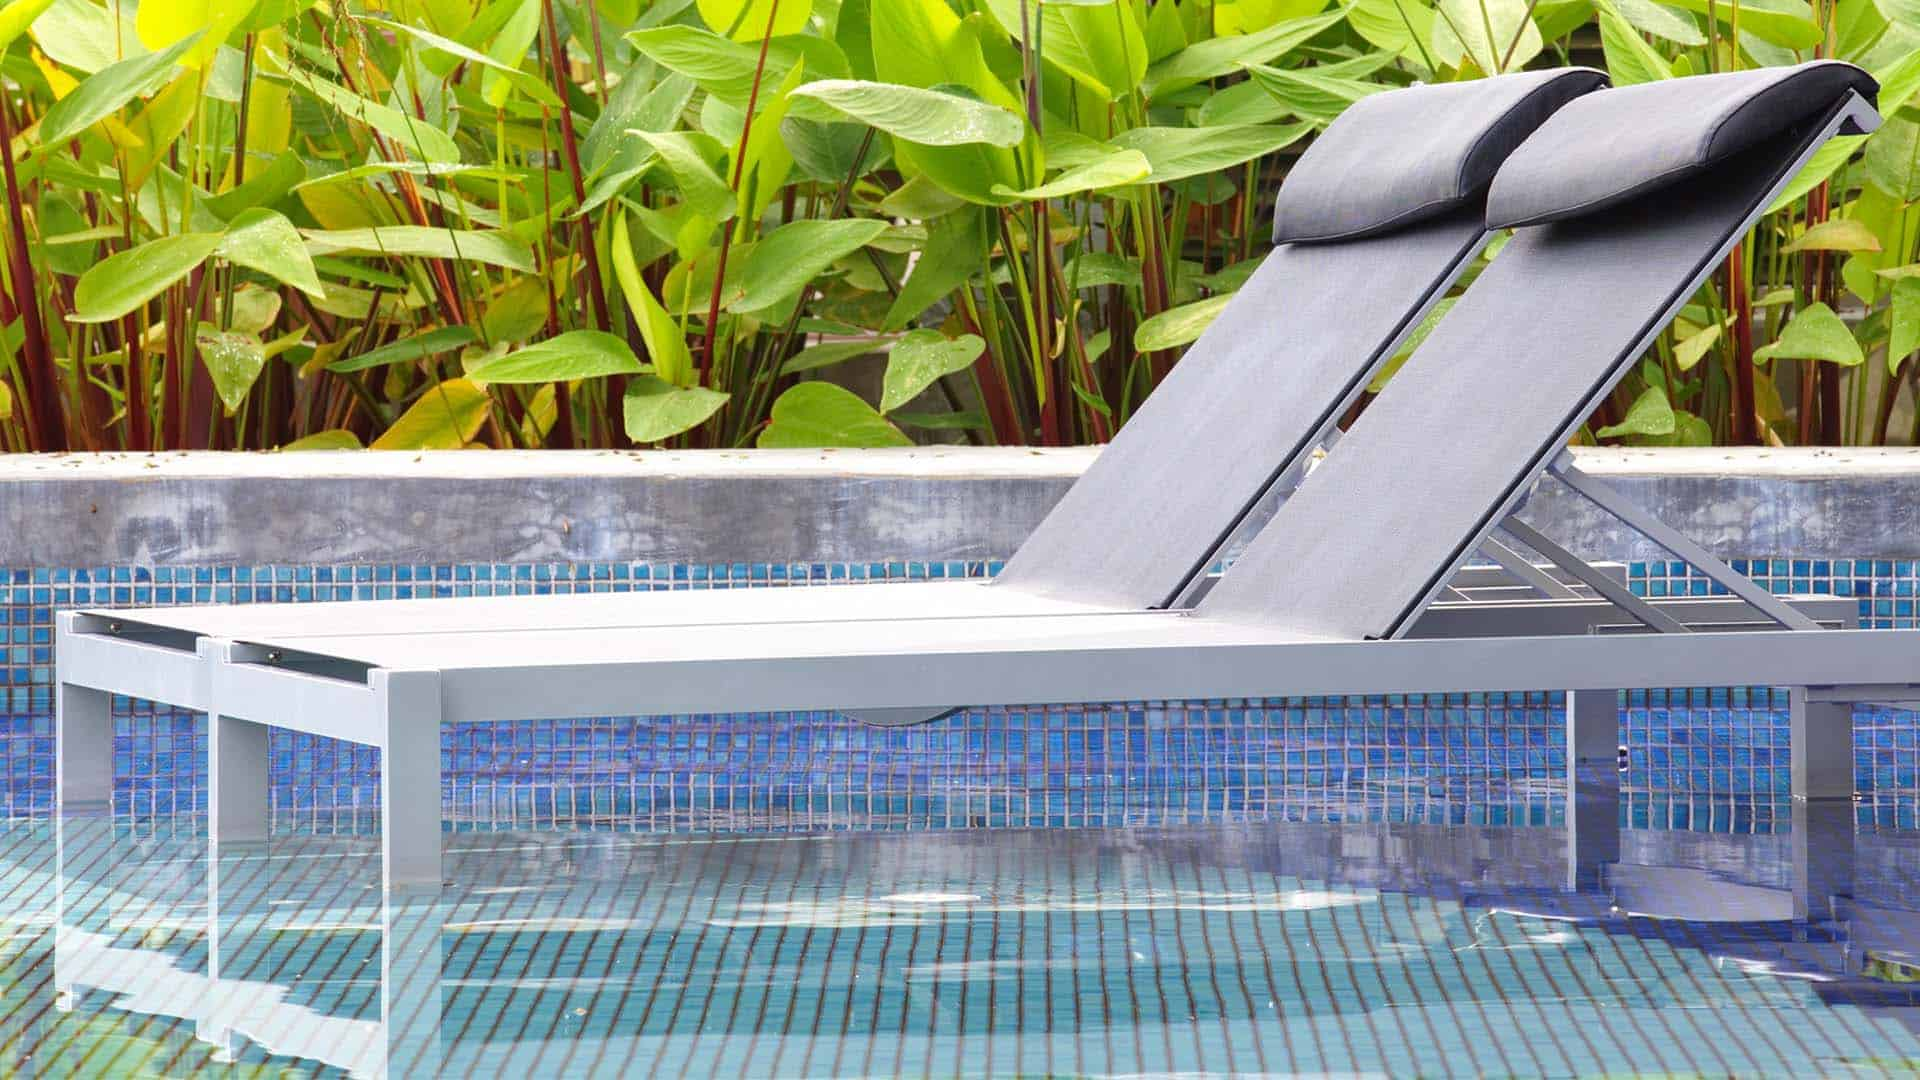 Chaise lounge chair inside of shallow pool in front of green plants